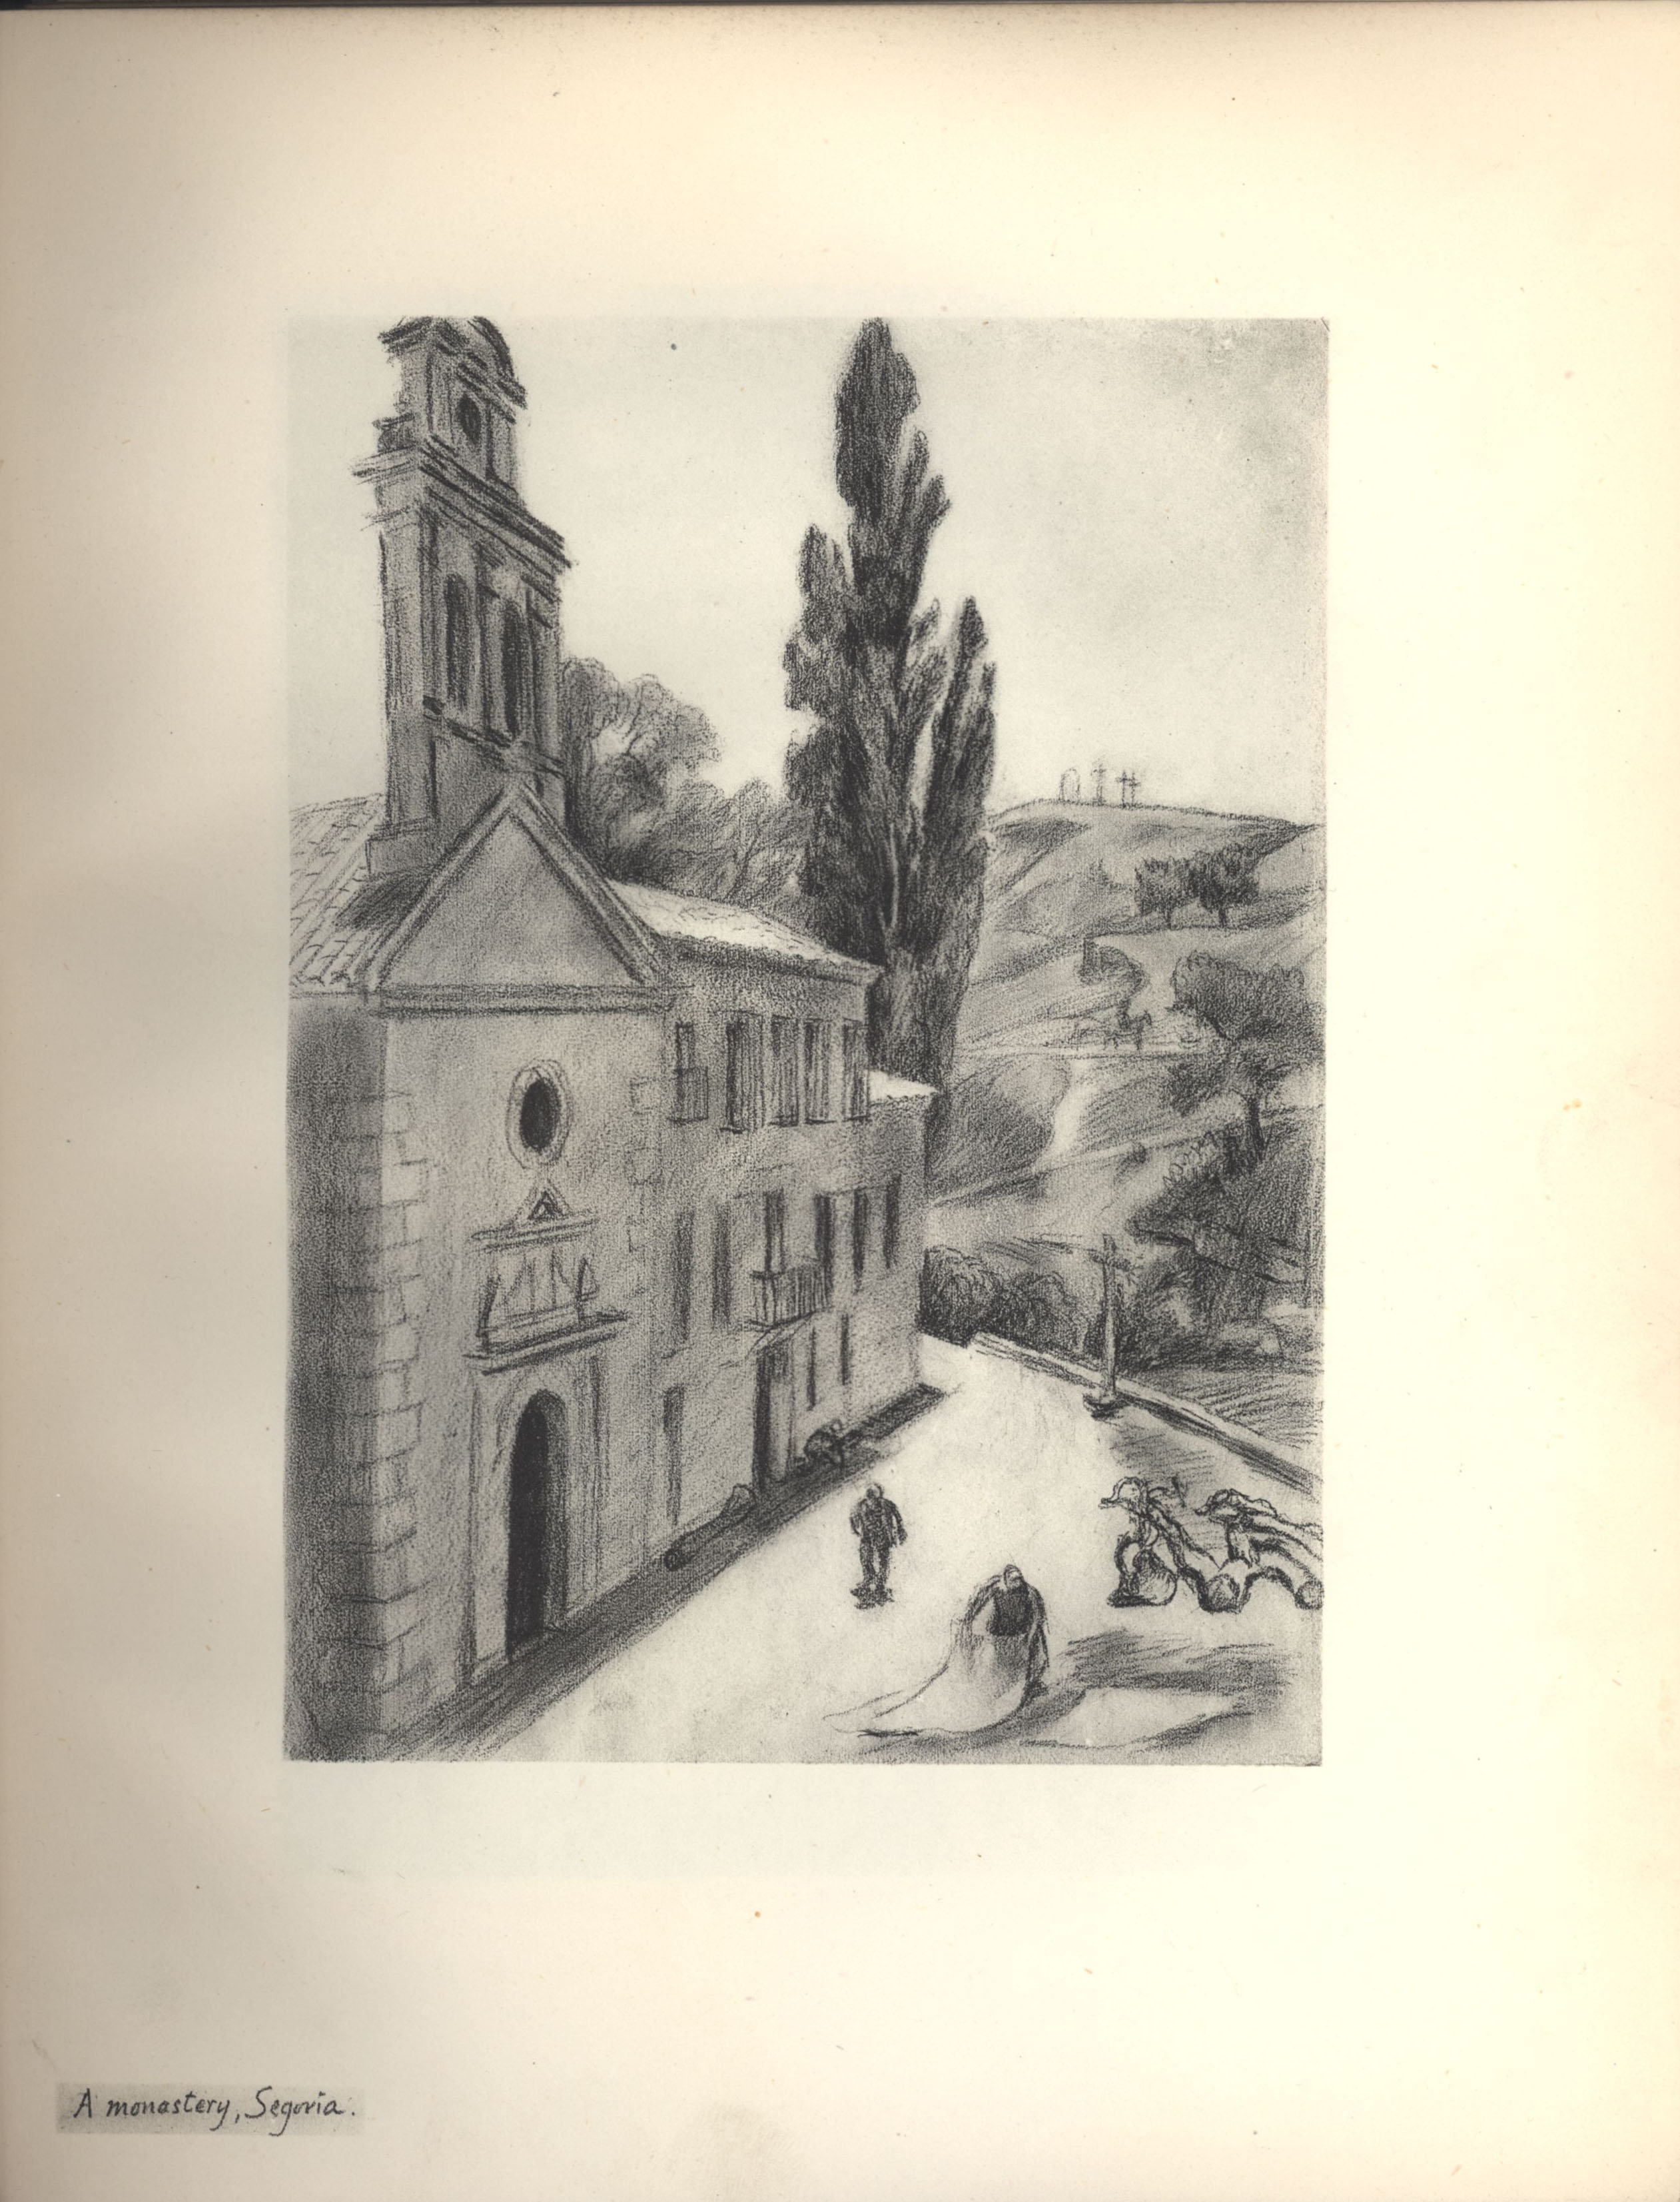 A Monastery, Segoria. Sketch from Roger Fry's sketchbook, 1923, used in 'A Sampler of Castile'.